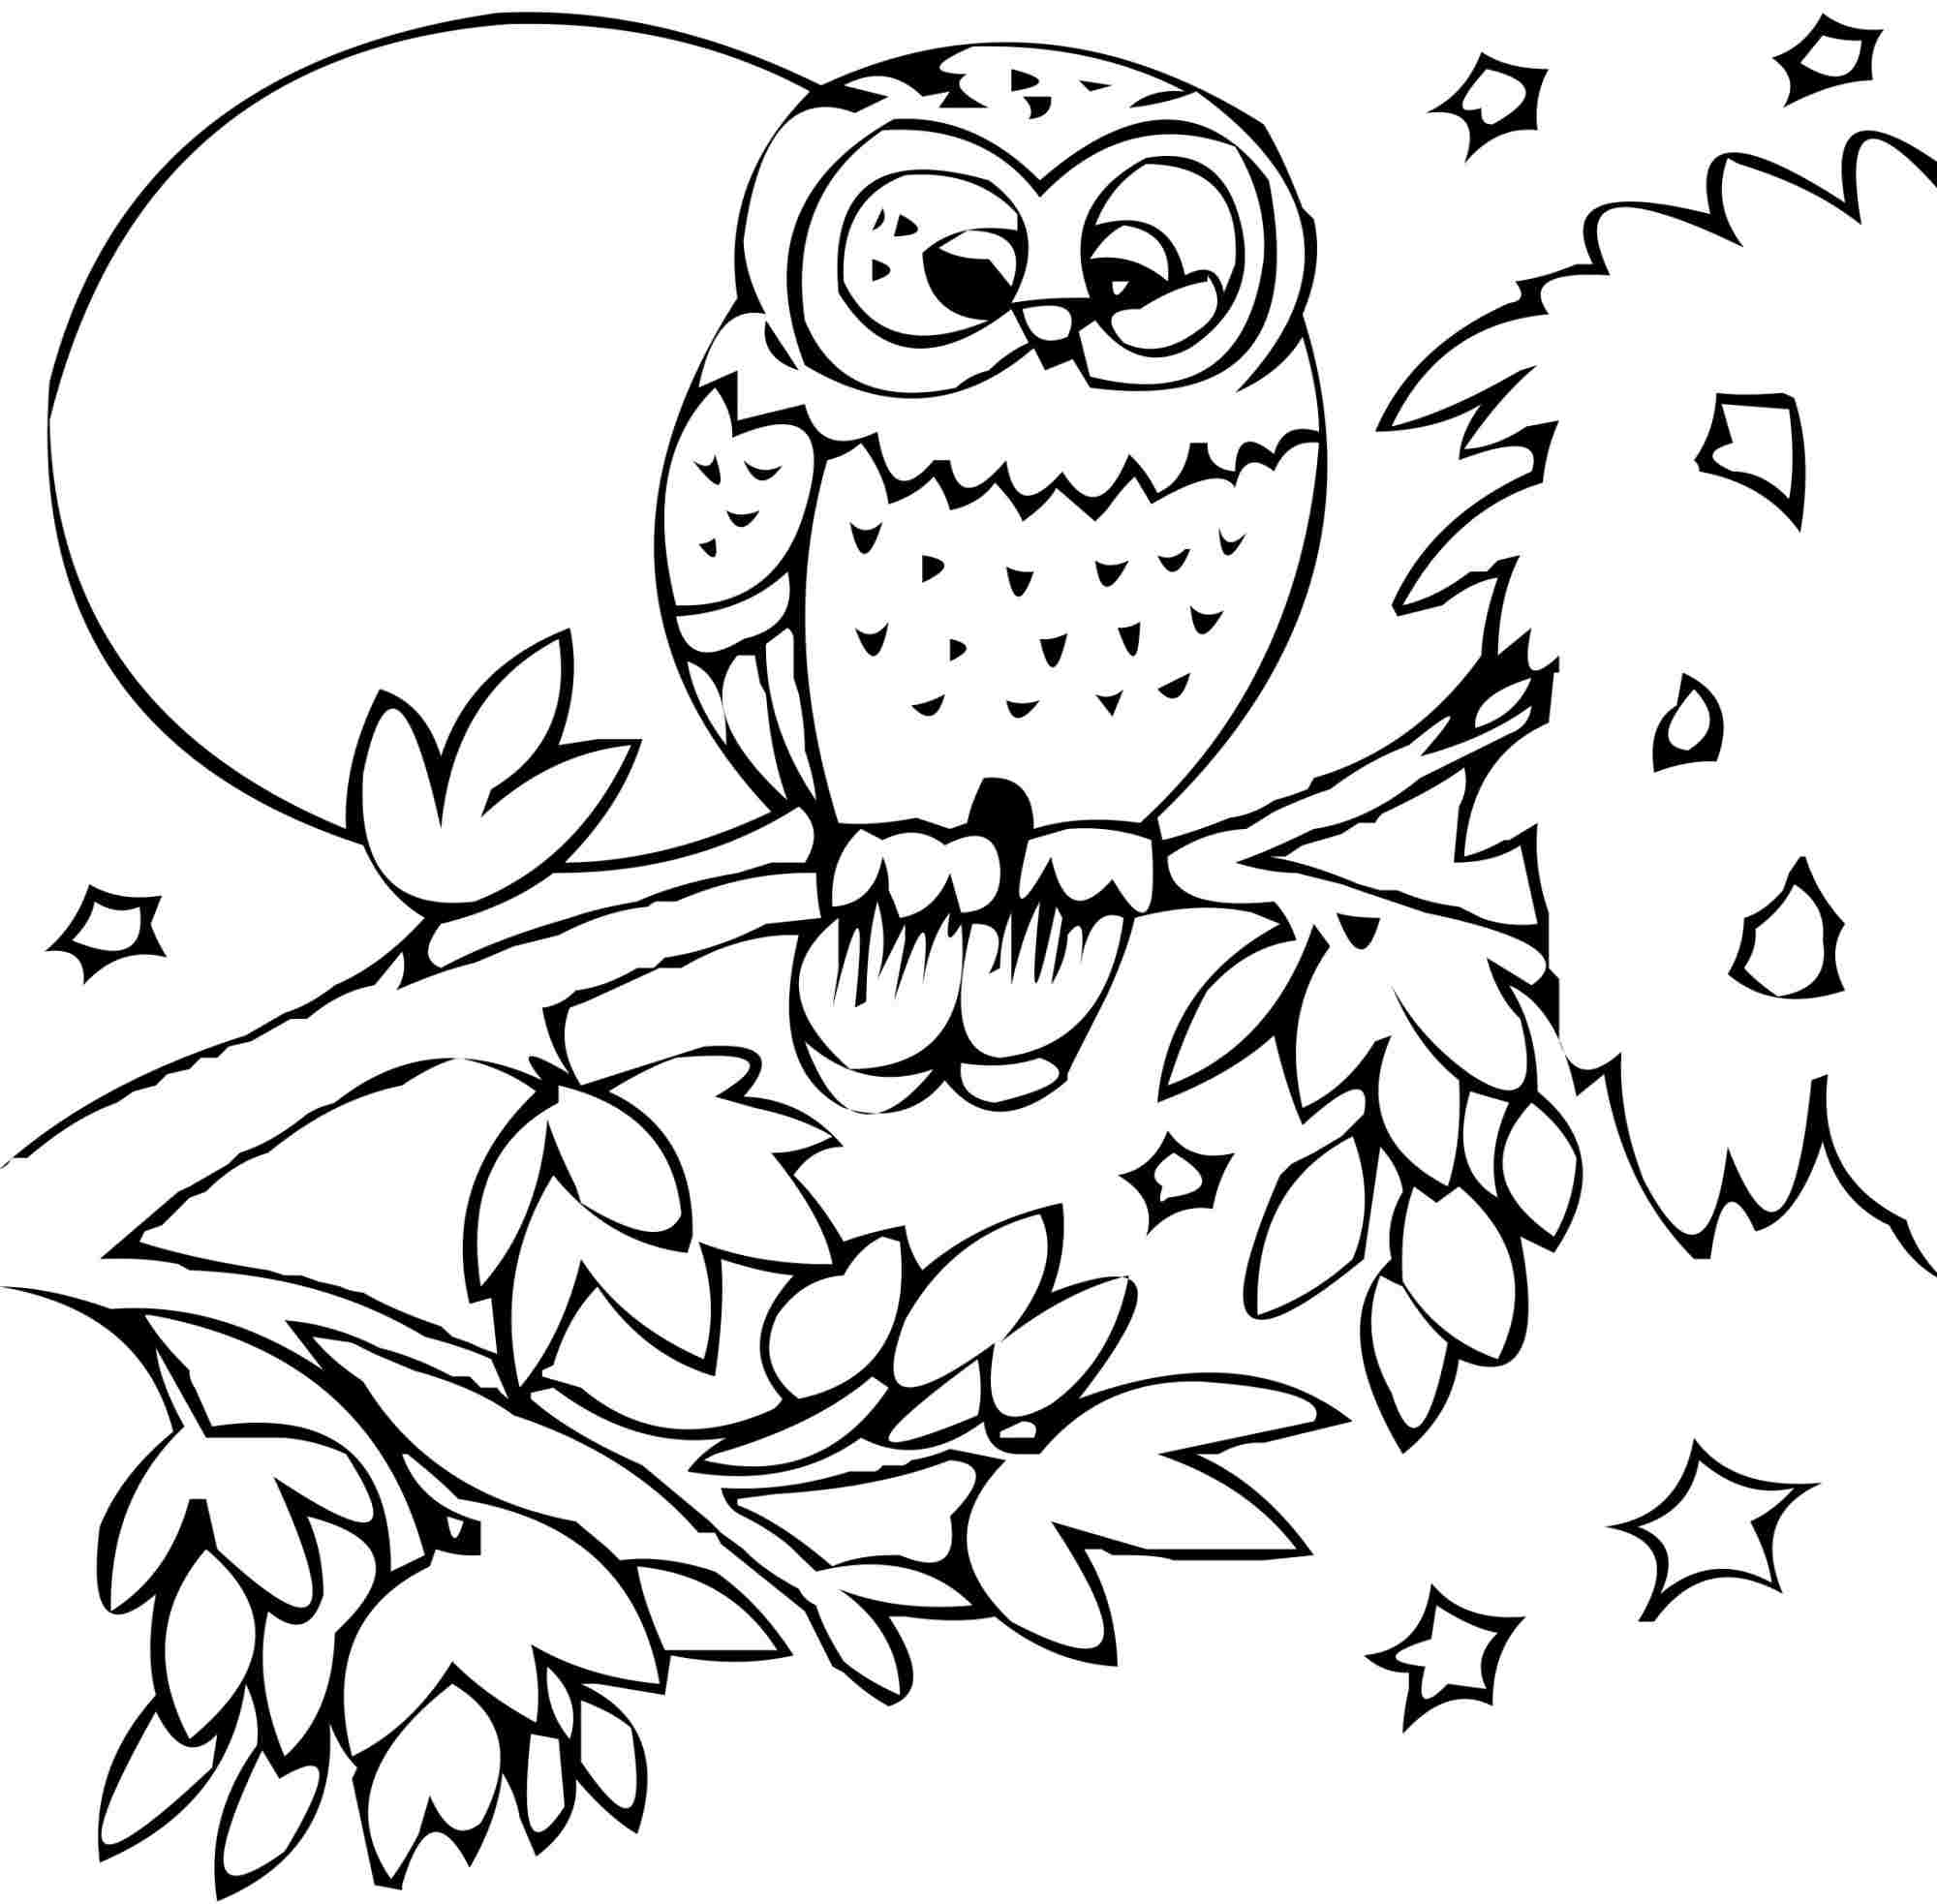 Animal Coloring Pages For Kids At Getdrawings